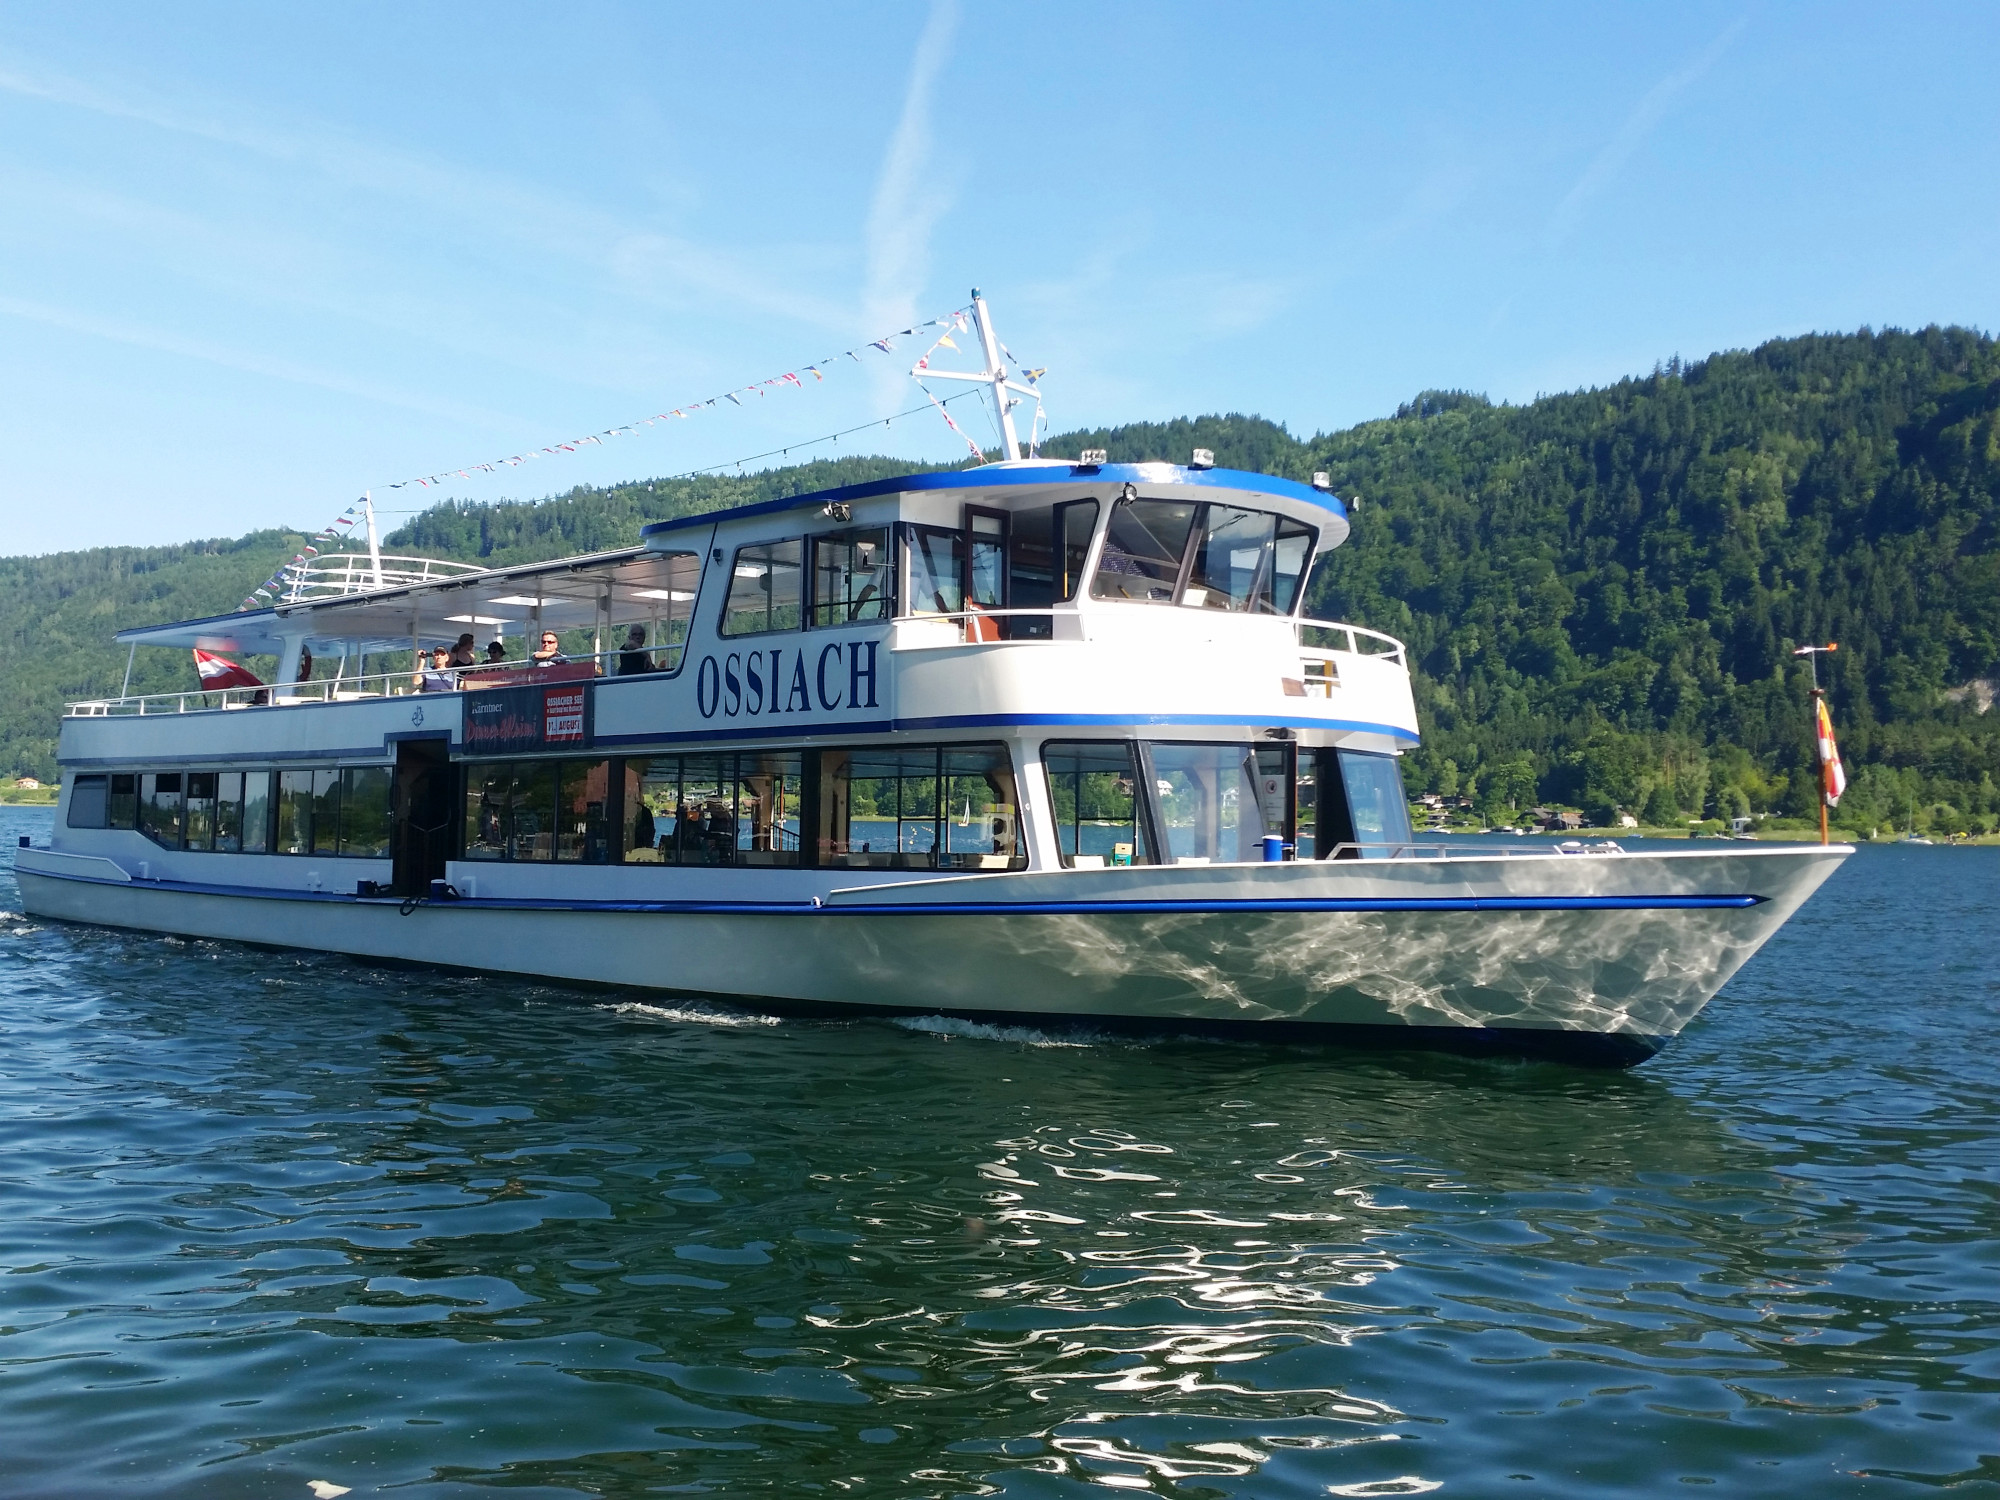 MS Ossiach Ossiachersee